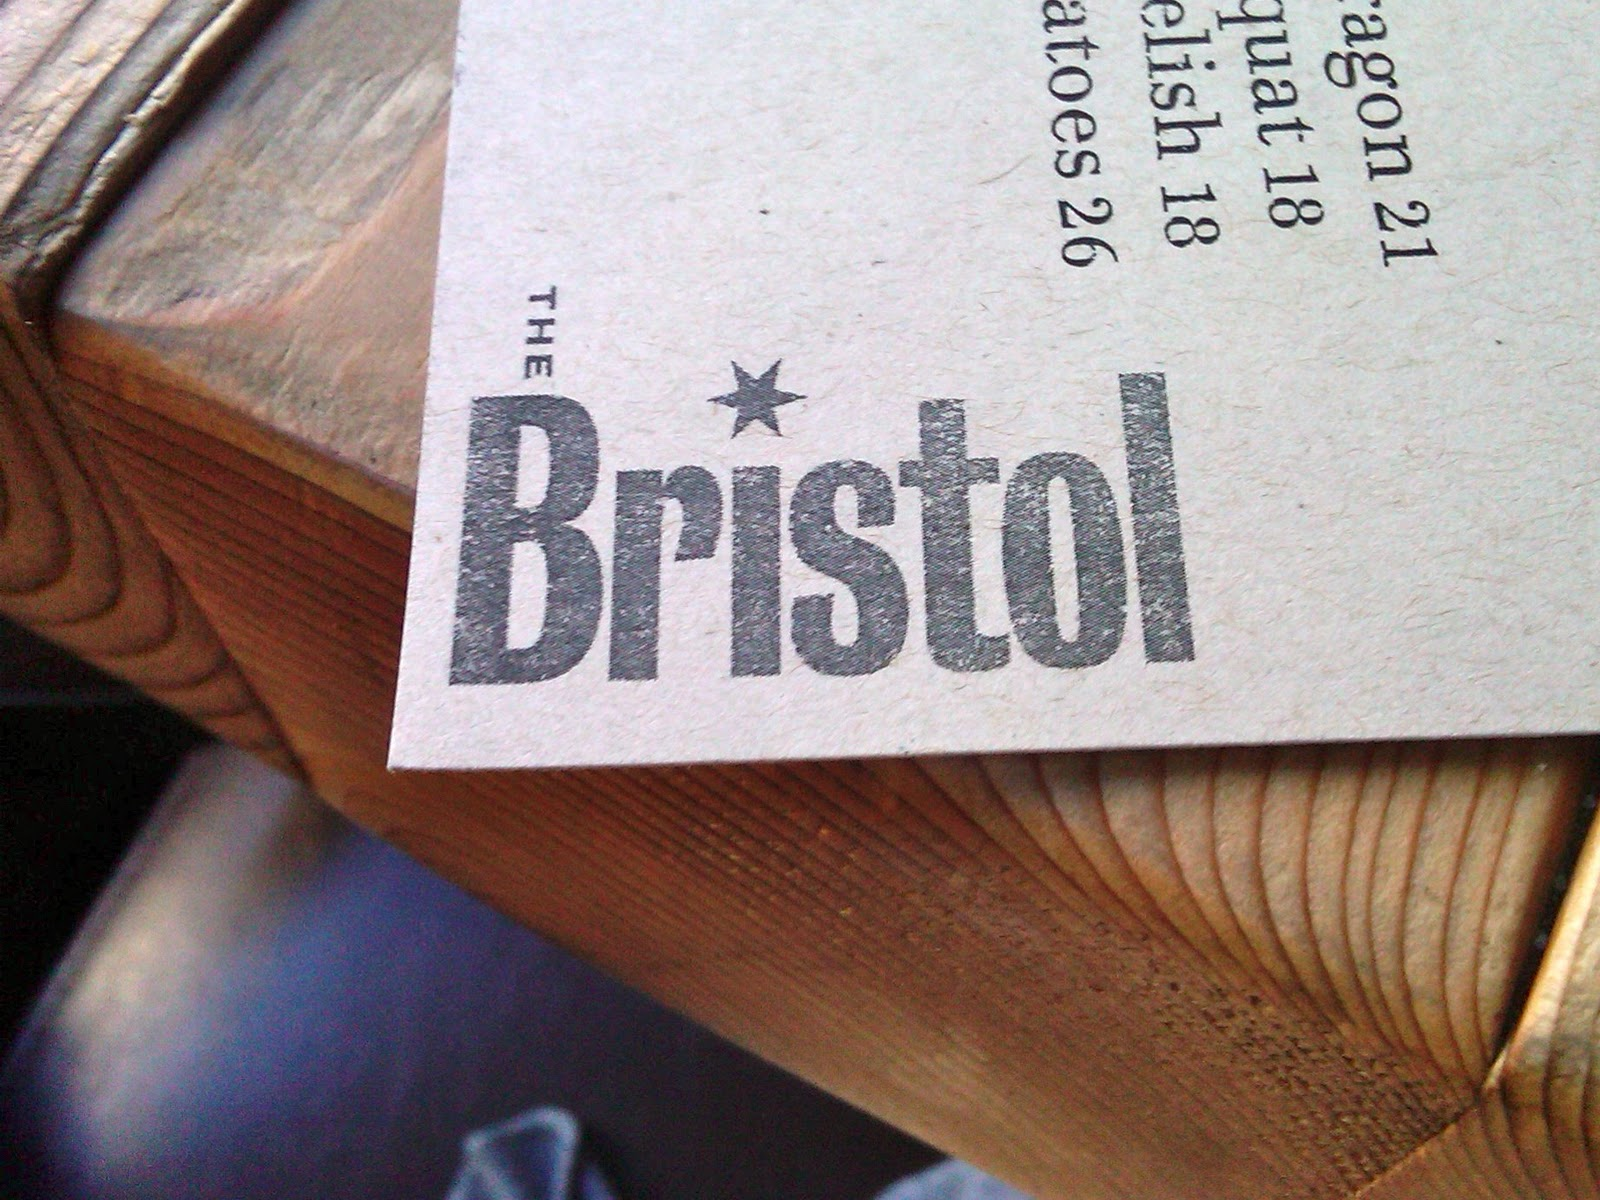 bristol dating ideas A-z alphabet dating: fun date ideas from a-z last updated: july 28, 2018 first published: jan 12, 2015 i broke them down into activities and places to have your date since we focus our blog on travel if you can't travel there, you can also have a themed night at home the examples are also open to interpretation.